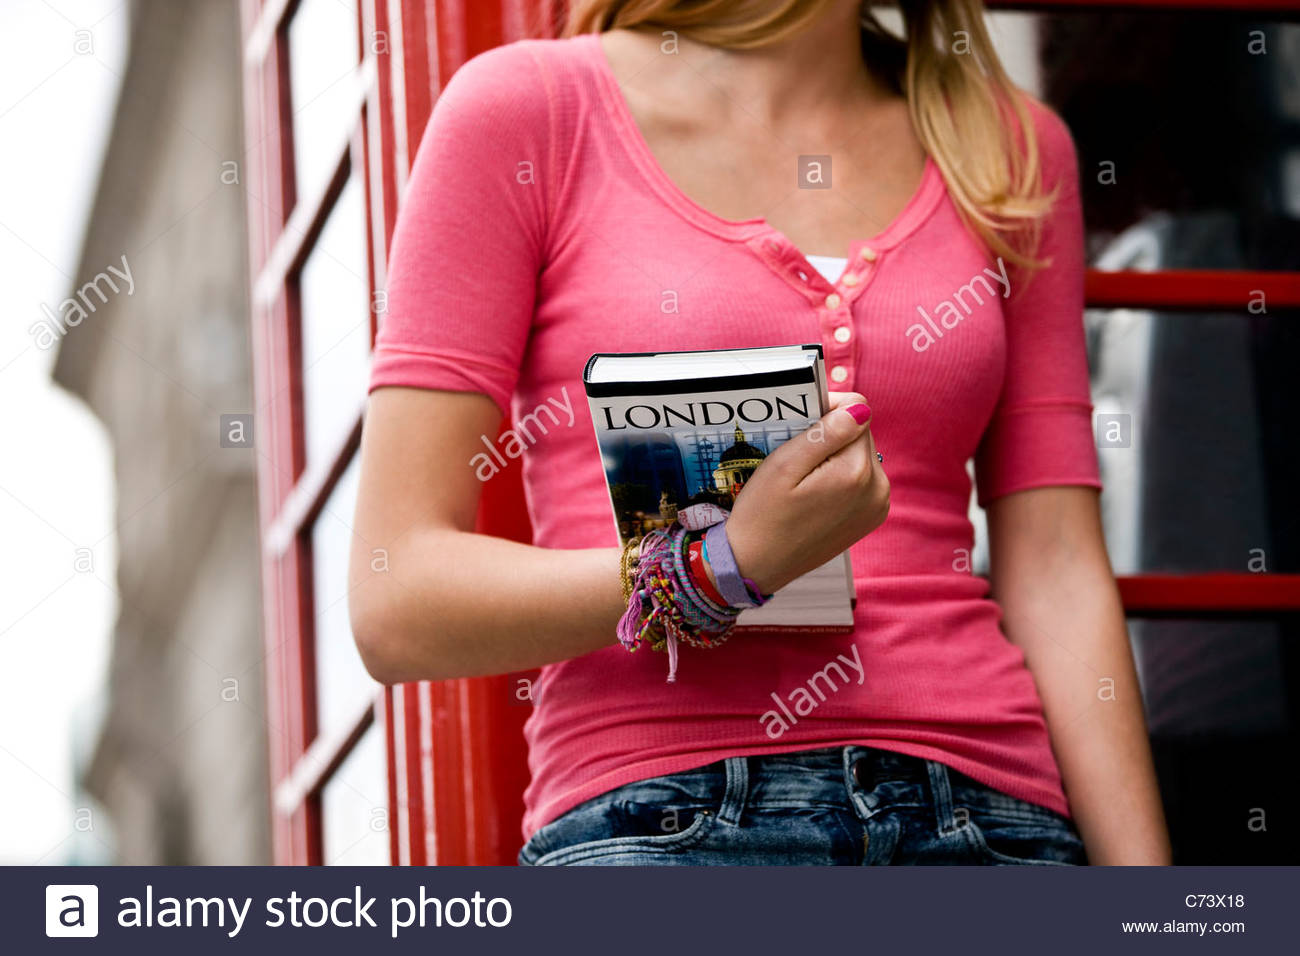 A teenage girl holding a London guidebook - Stock Image